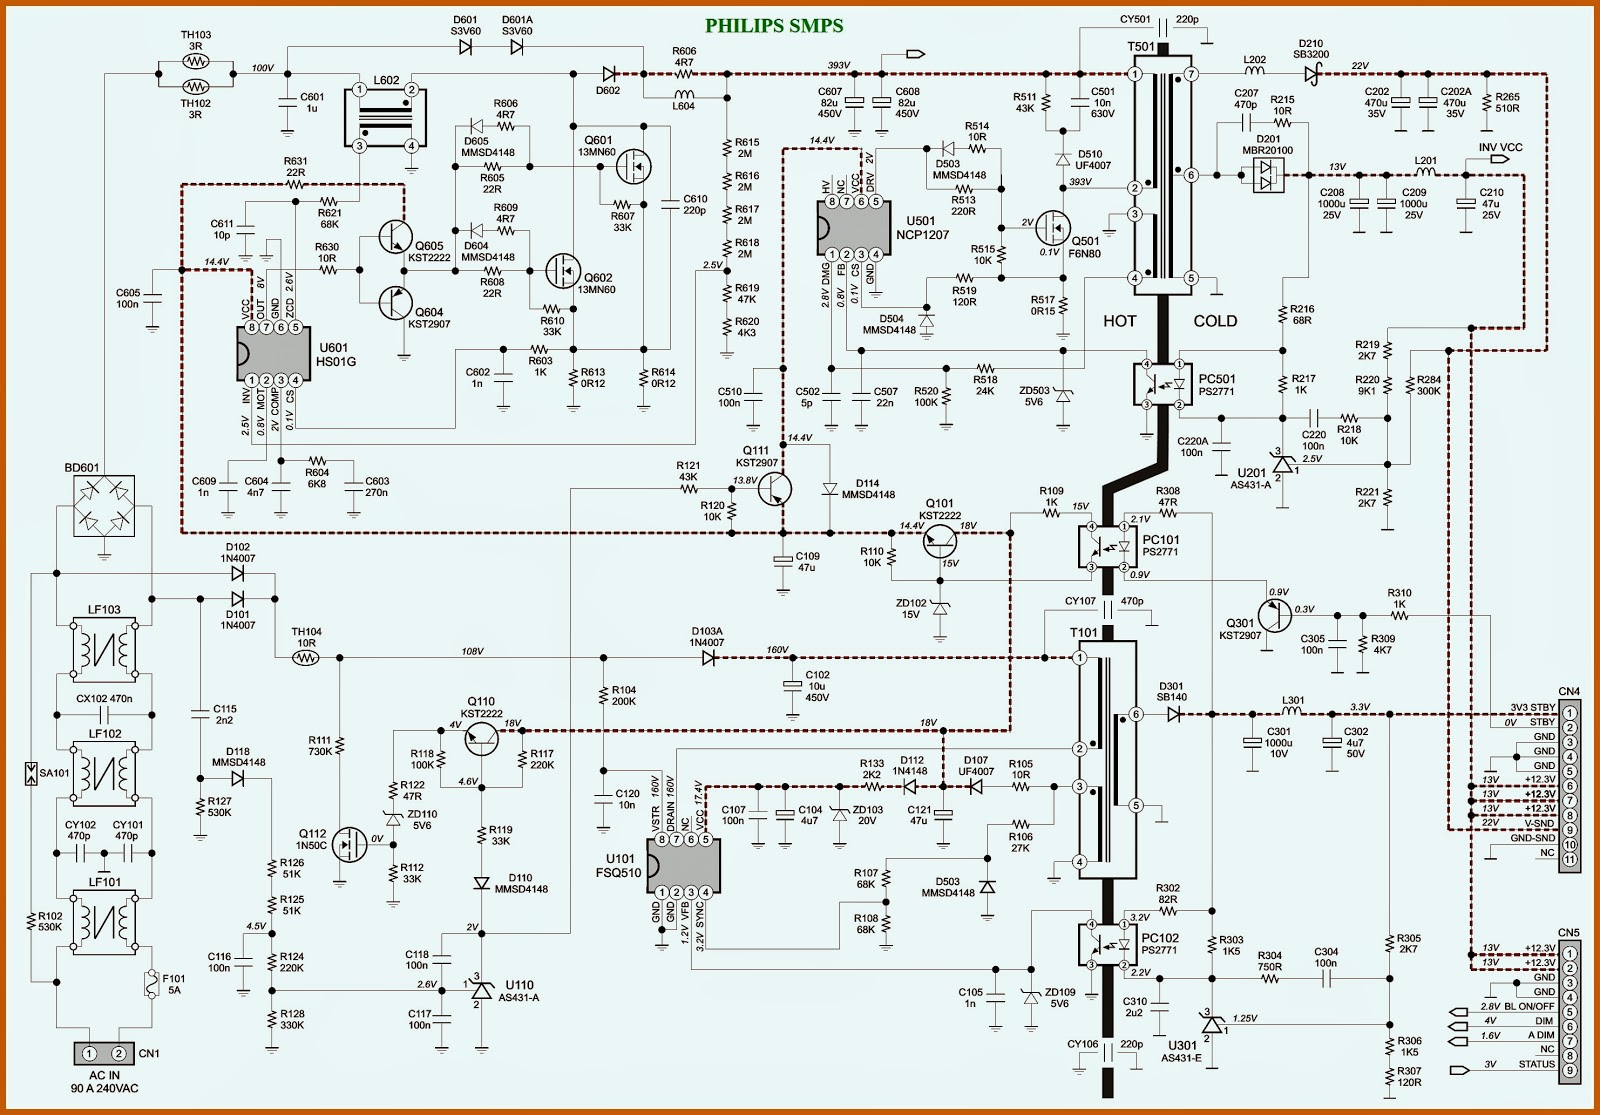 tv power schematic wiring diagram files lg tv circuit diagram including power supply schematic diagram [ 1600 x 1115 Pixel ]